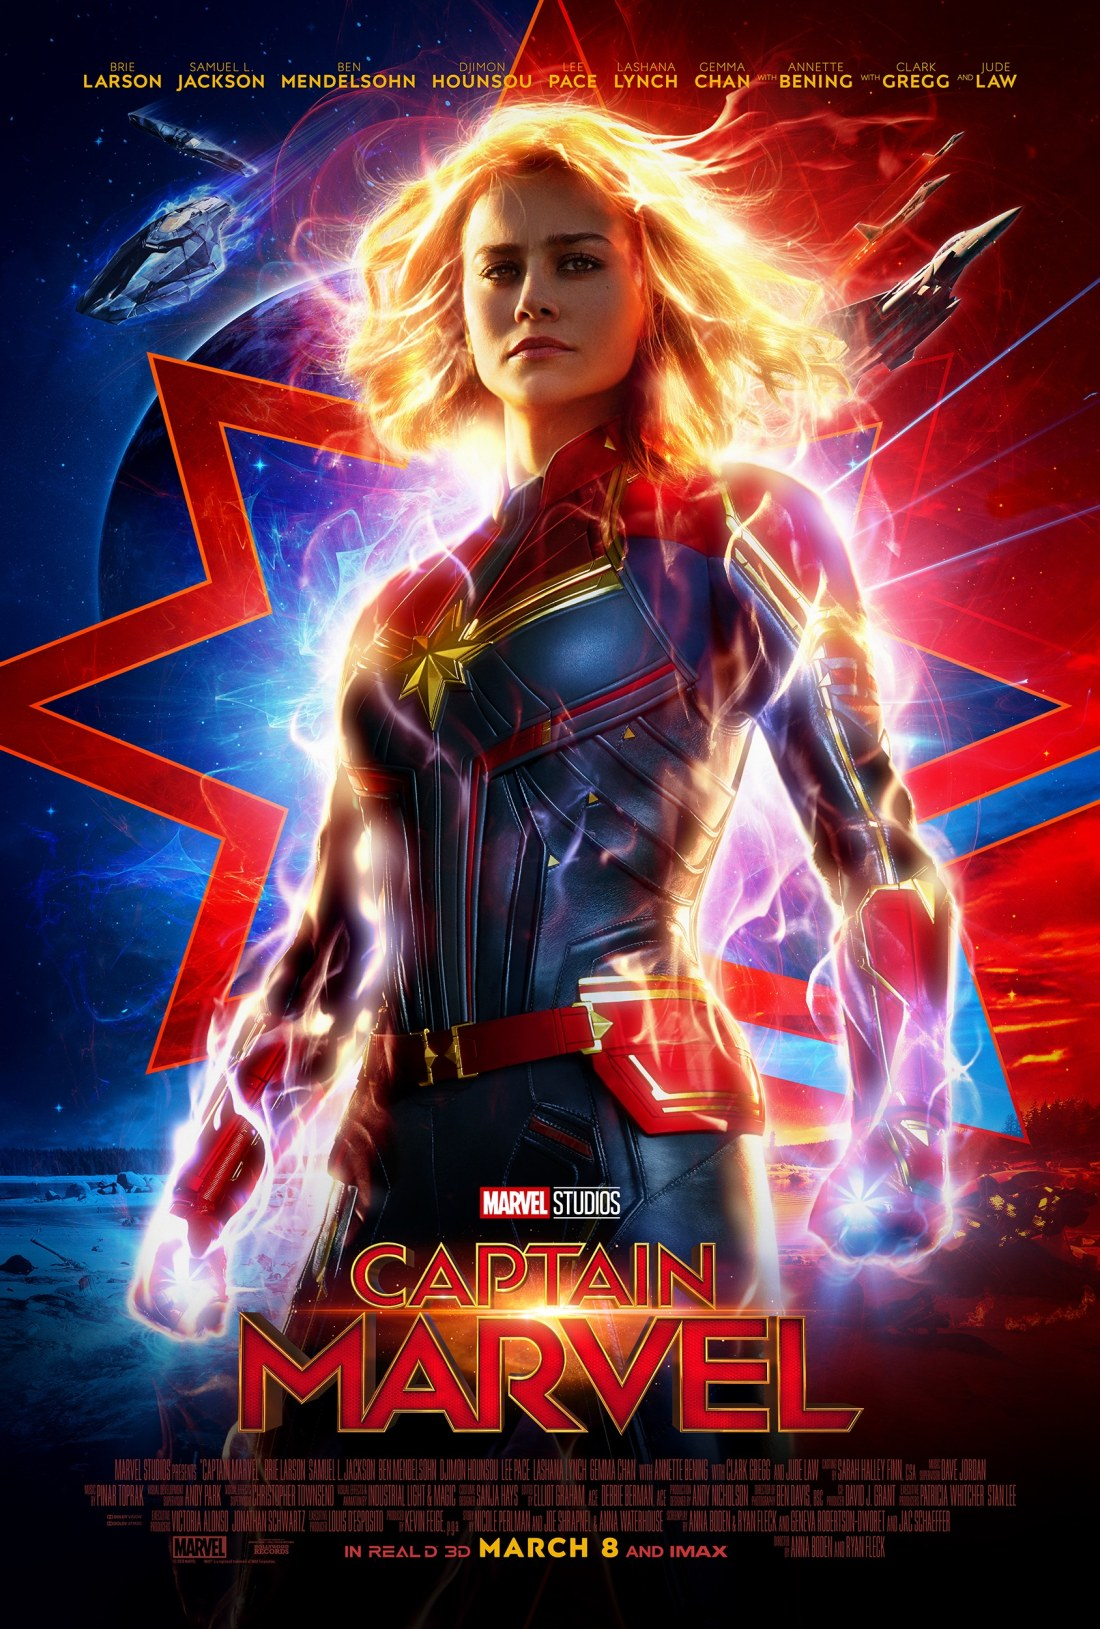 Marvel Studios Captain Marvel Movie Poster. Set in the 1990s, Marvel Studios' CAPTAIN MARVEL is an all-new adventure from a previously unseen period in the history of the Marvel Cinematic Universe that follows the journey of Carol Danvers as she becomes one of the universe's most powerful heroes.